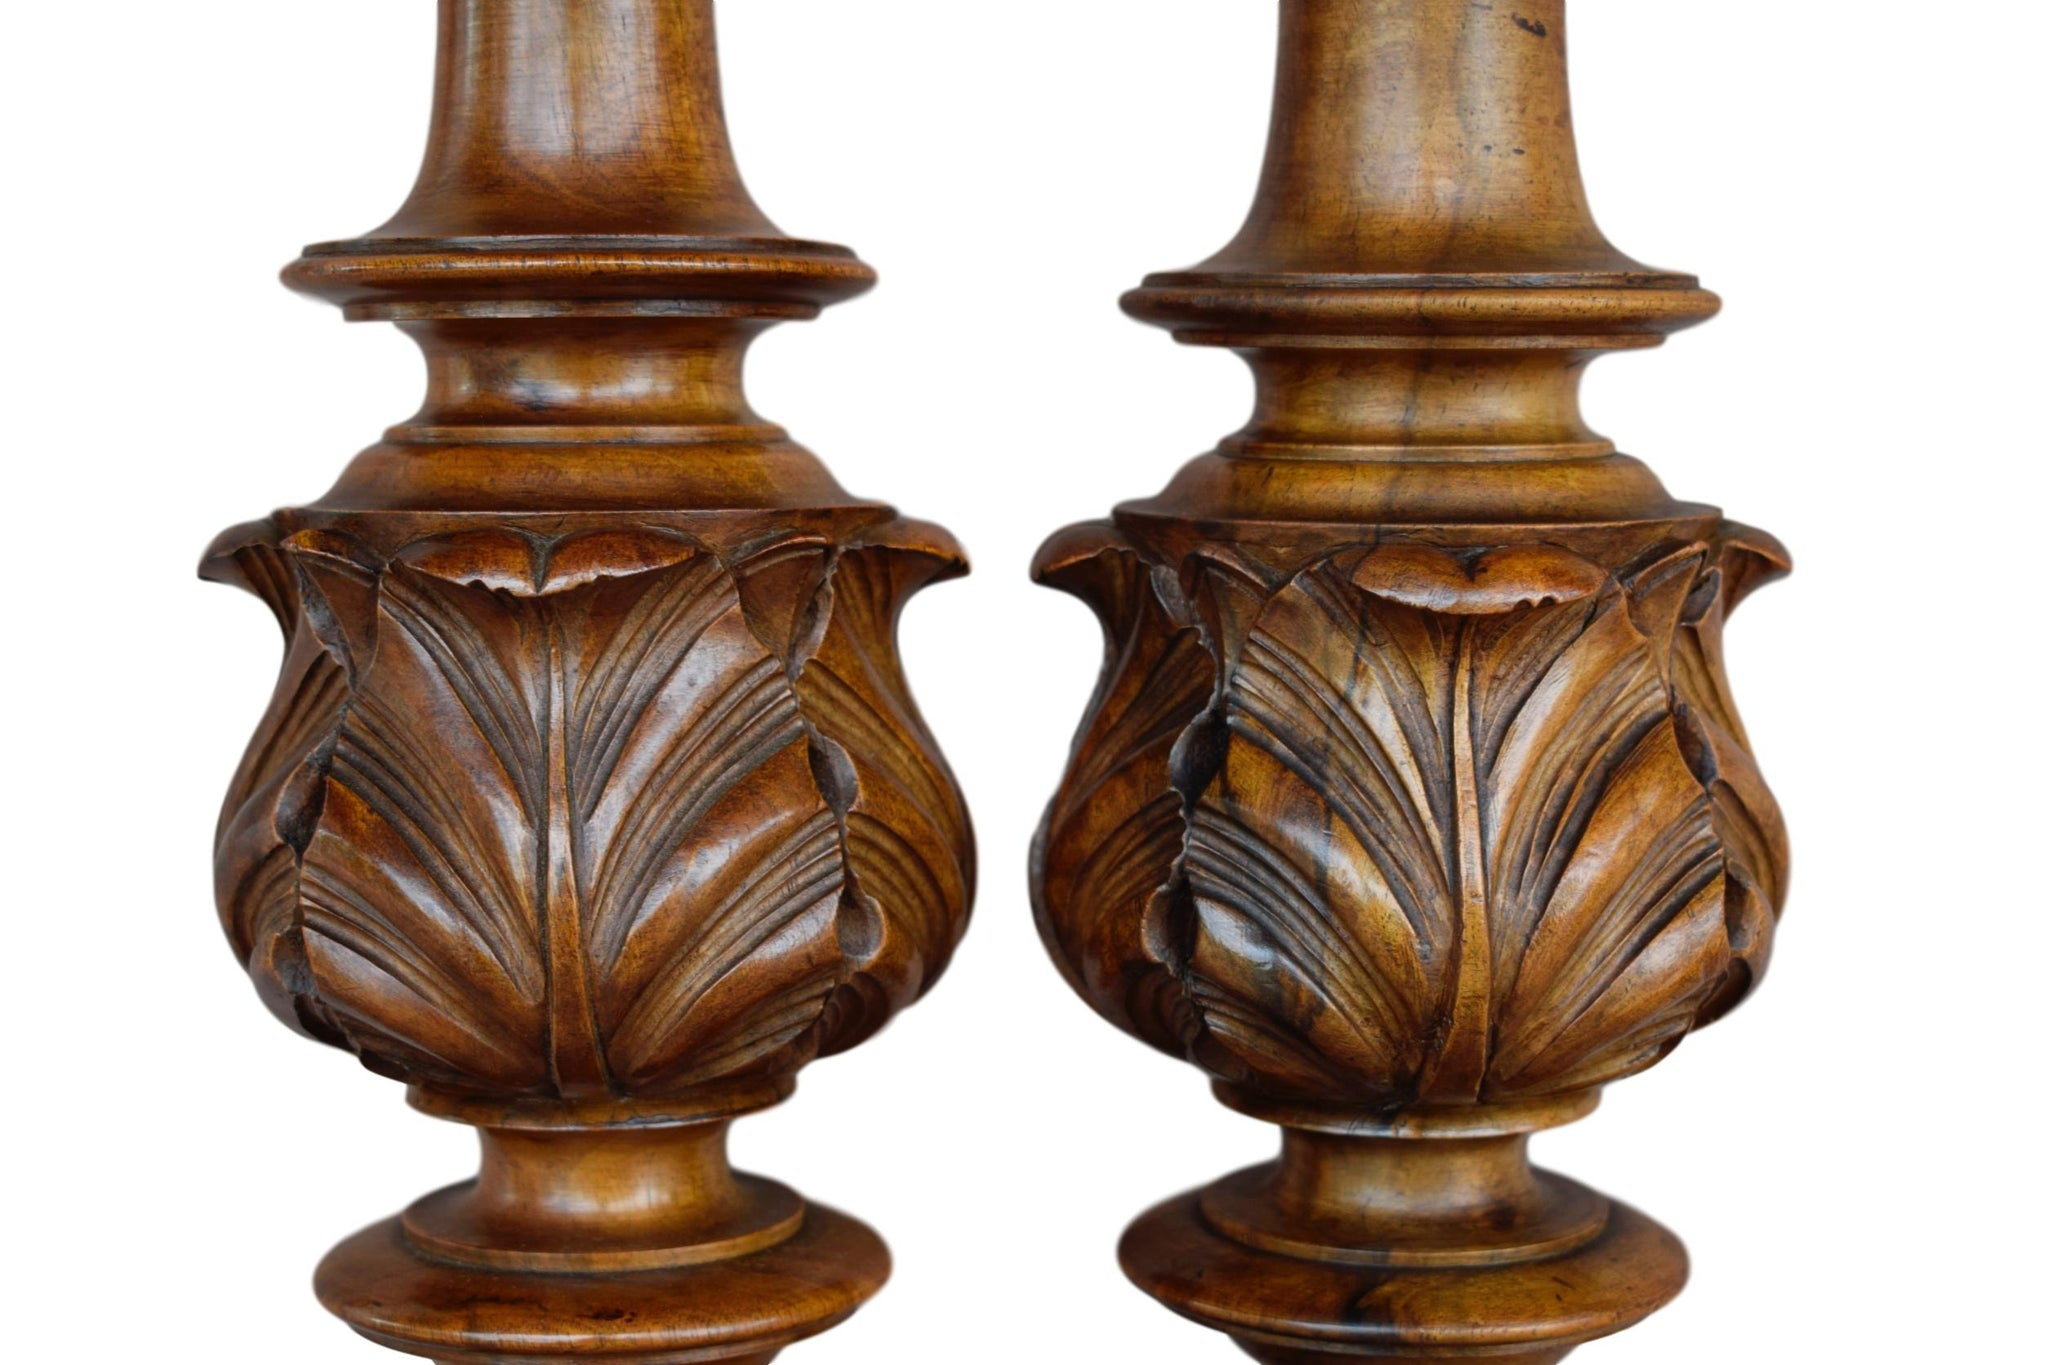 Pair of Balusters - Charmantiques